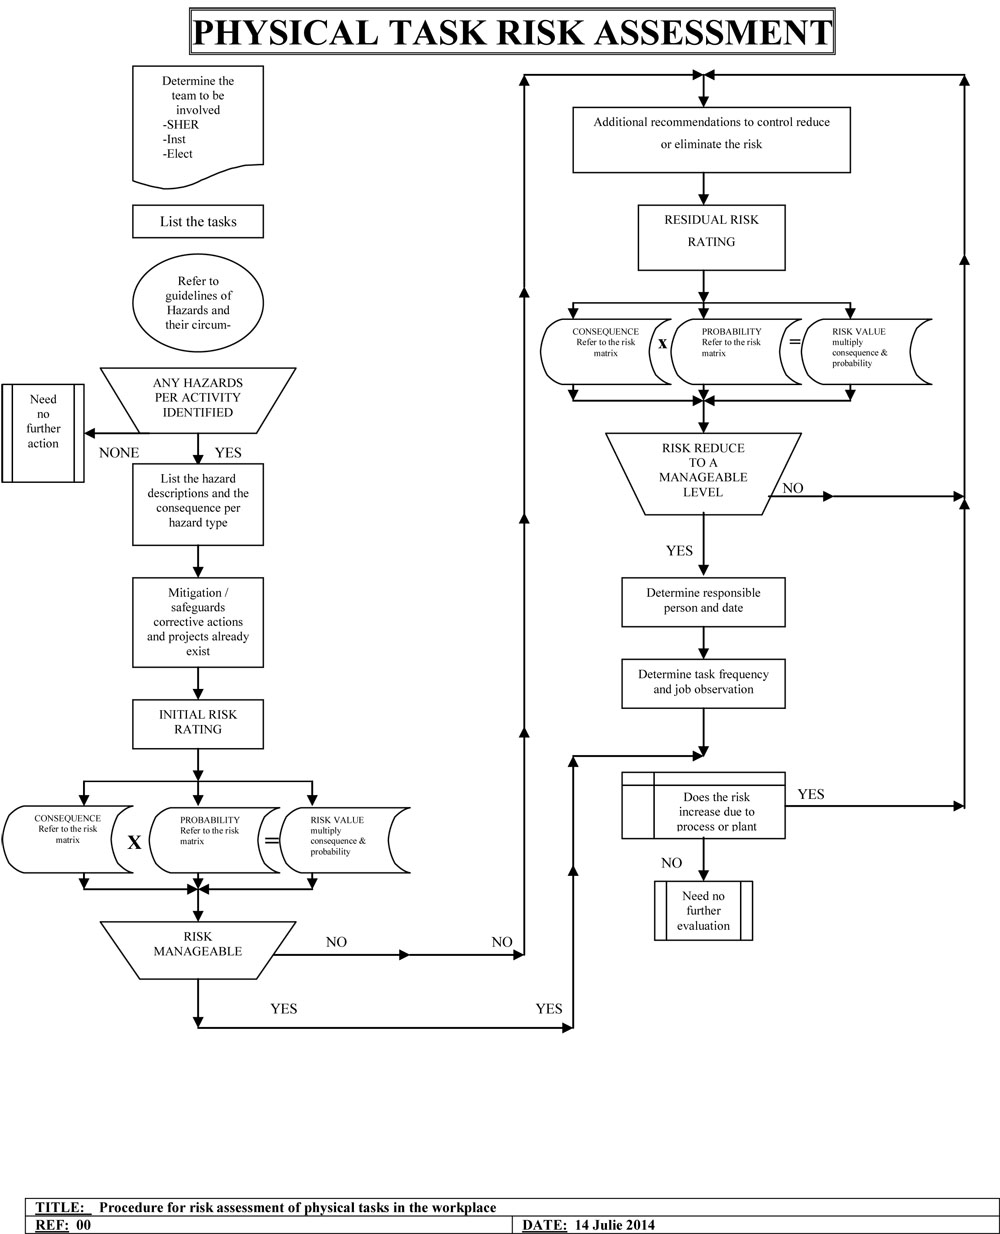 PAGE TAB 8 KNOWLEDGE BASE RISK ASSESSMENT FLOWCHART